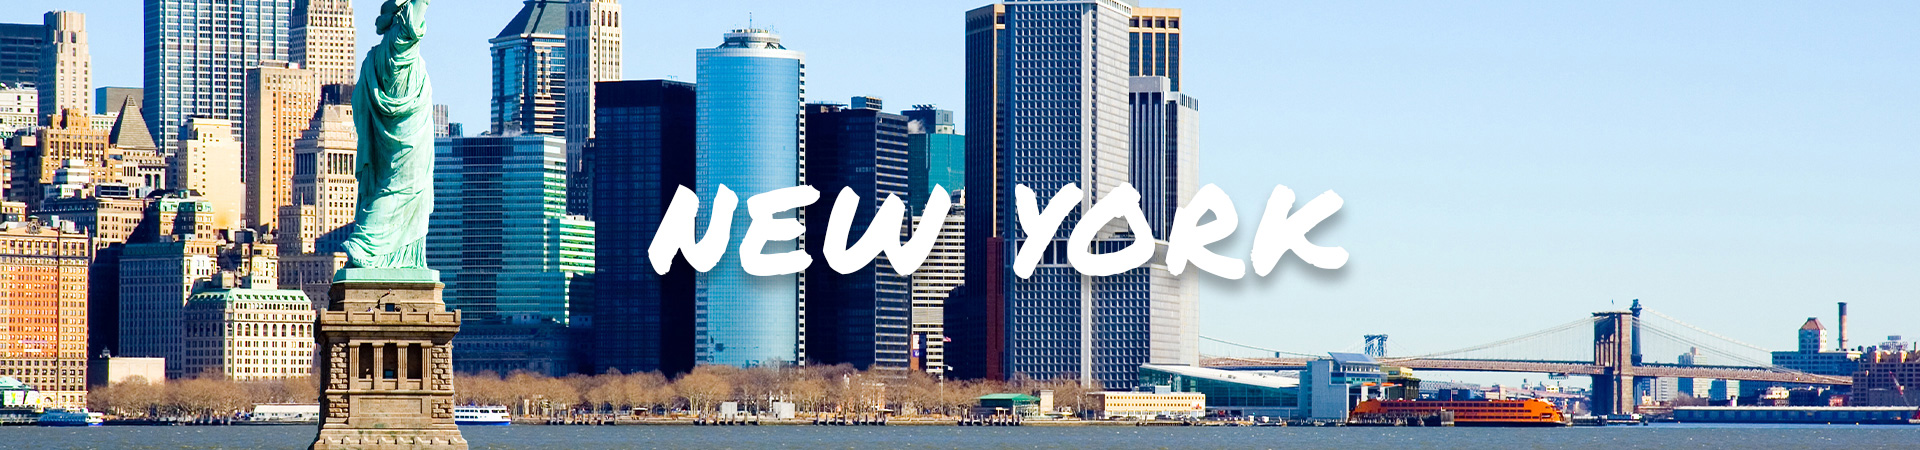 Physical Therapy Clinics in New York